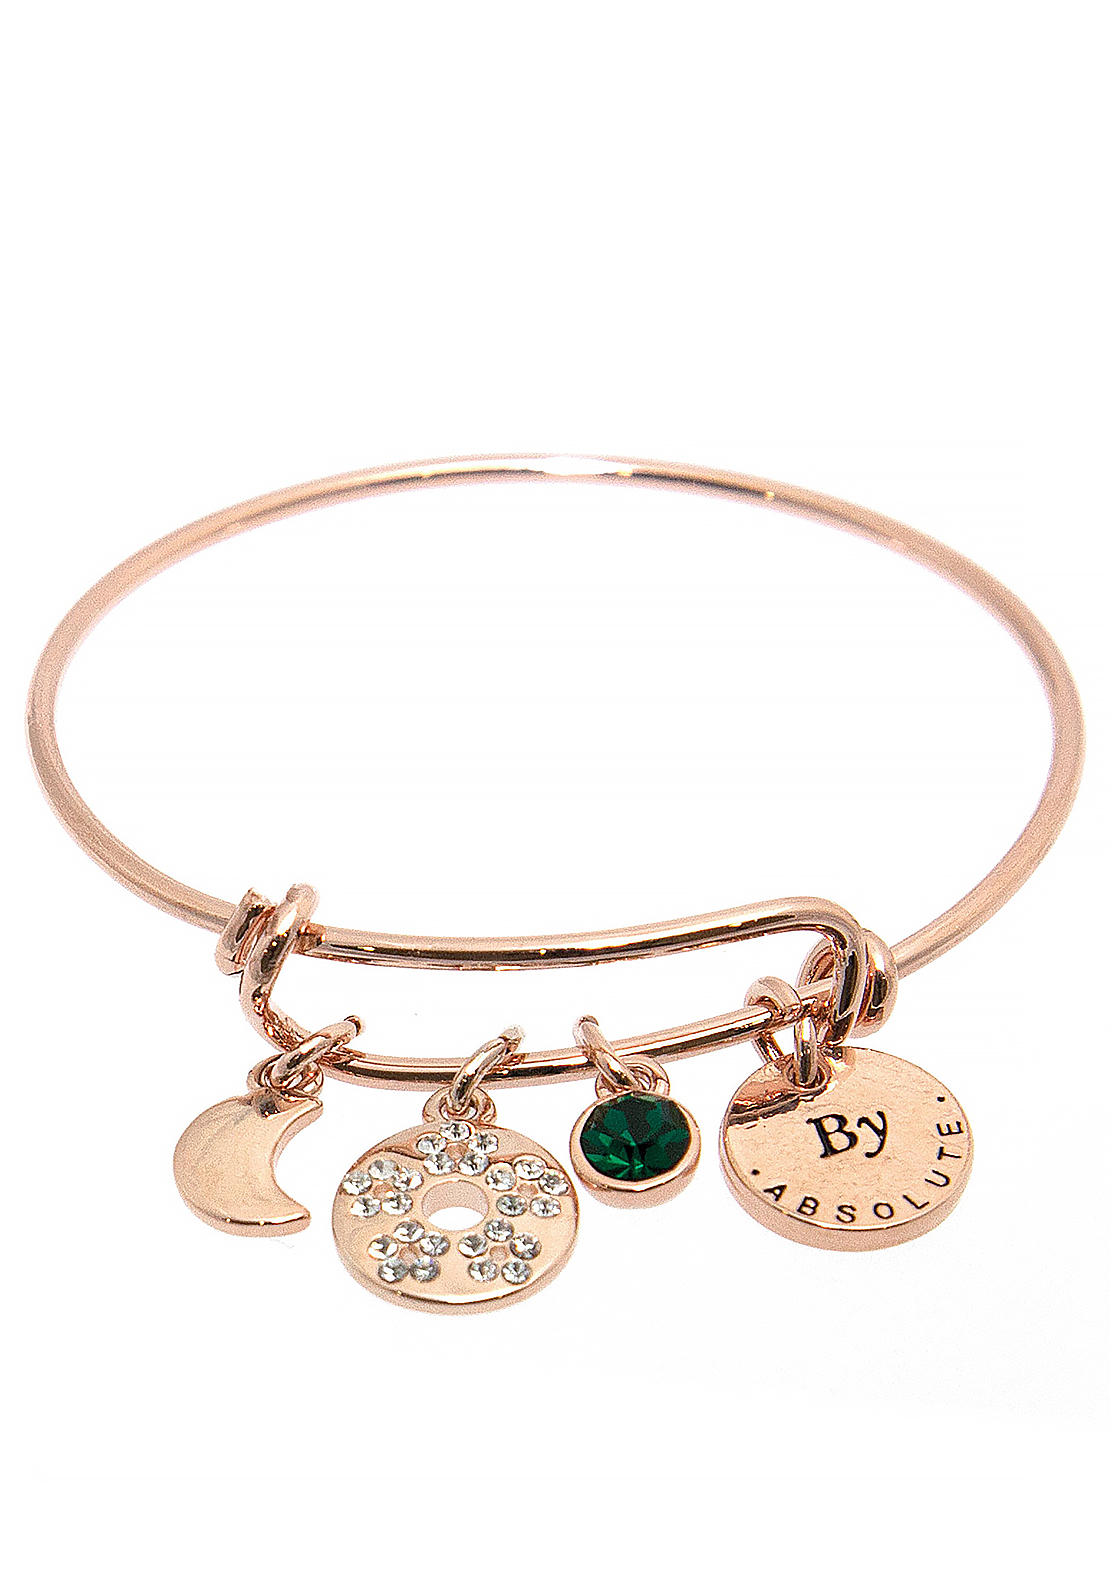 Absolute Jewellery Girls May Charm Bangle, Rose Gold